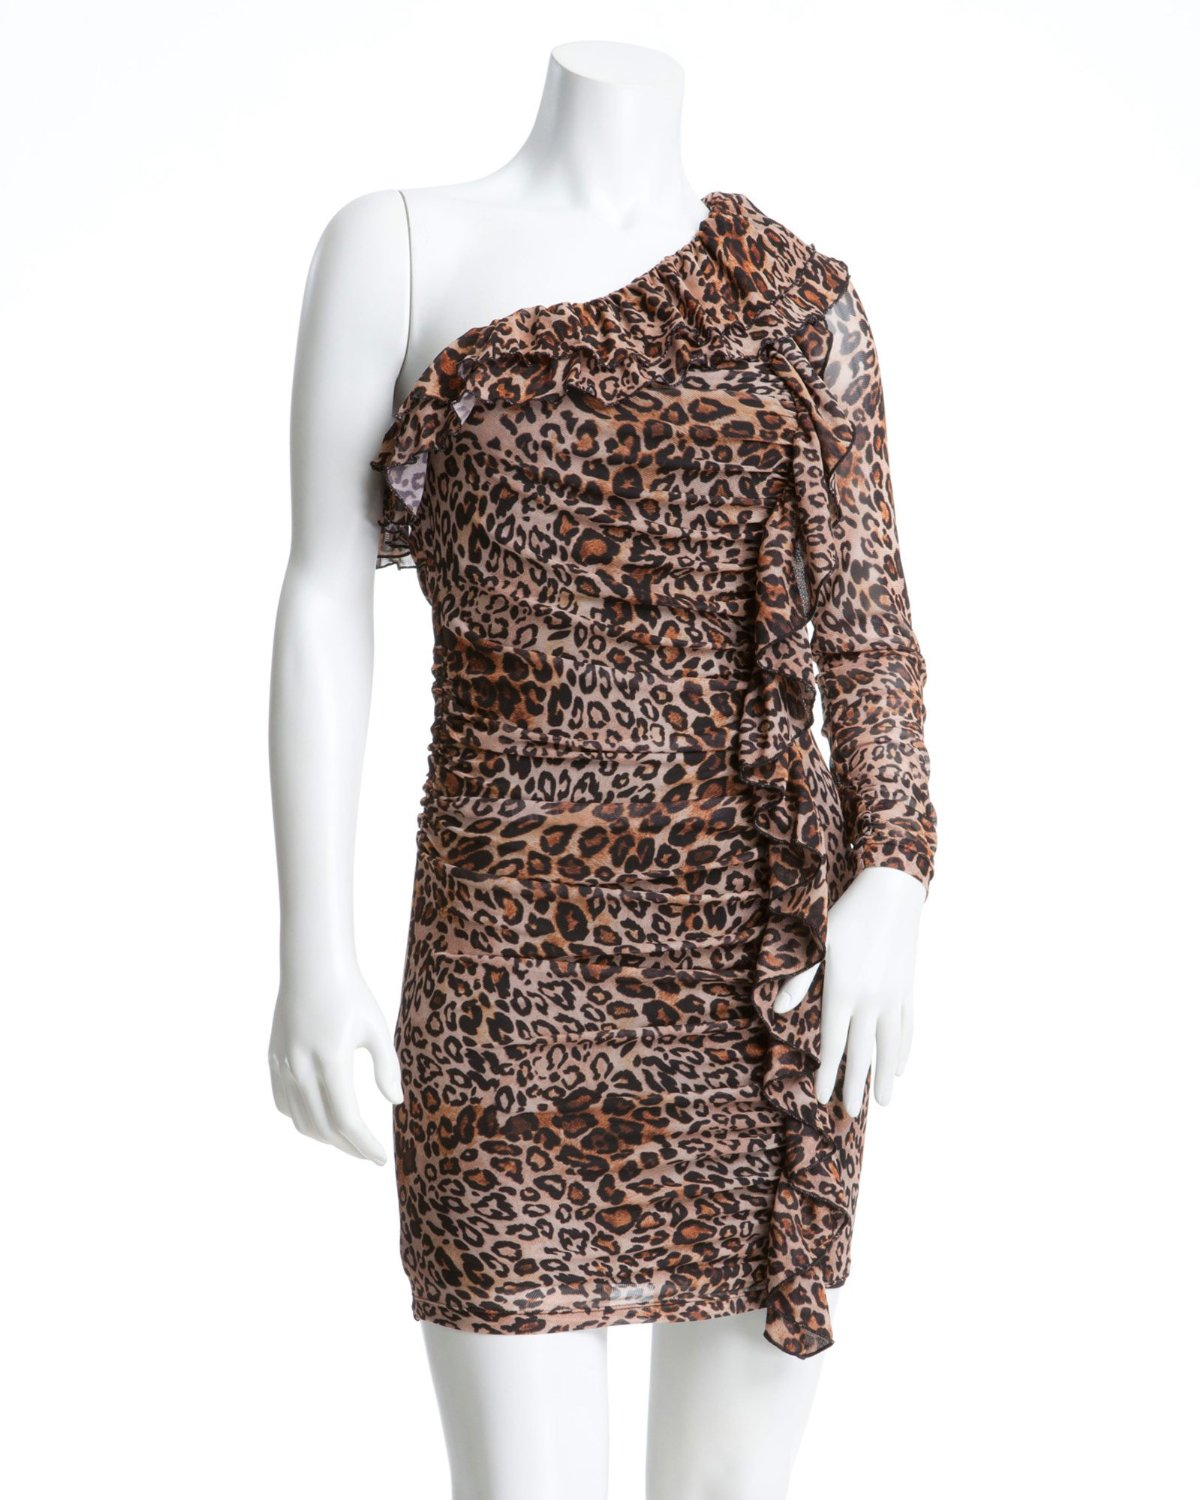 2b Sabrina One-Shoulder Leopard Animal Print Dress